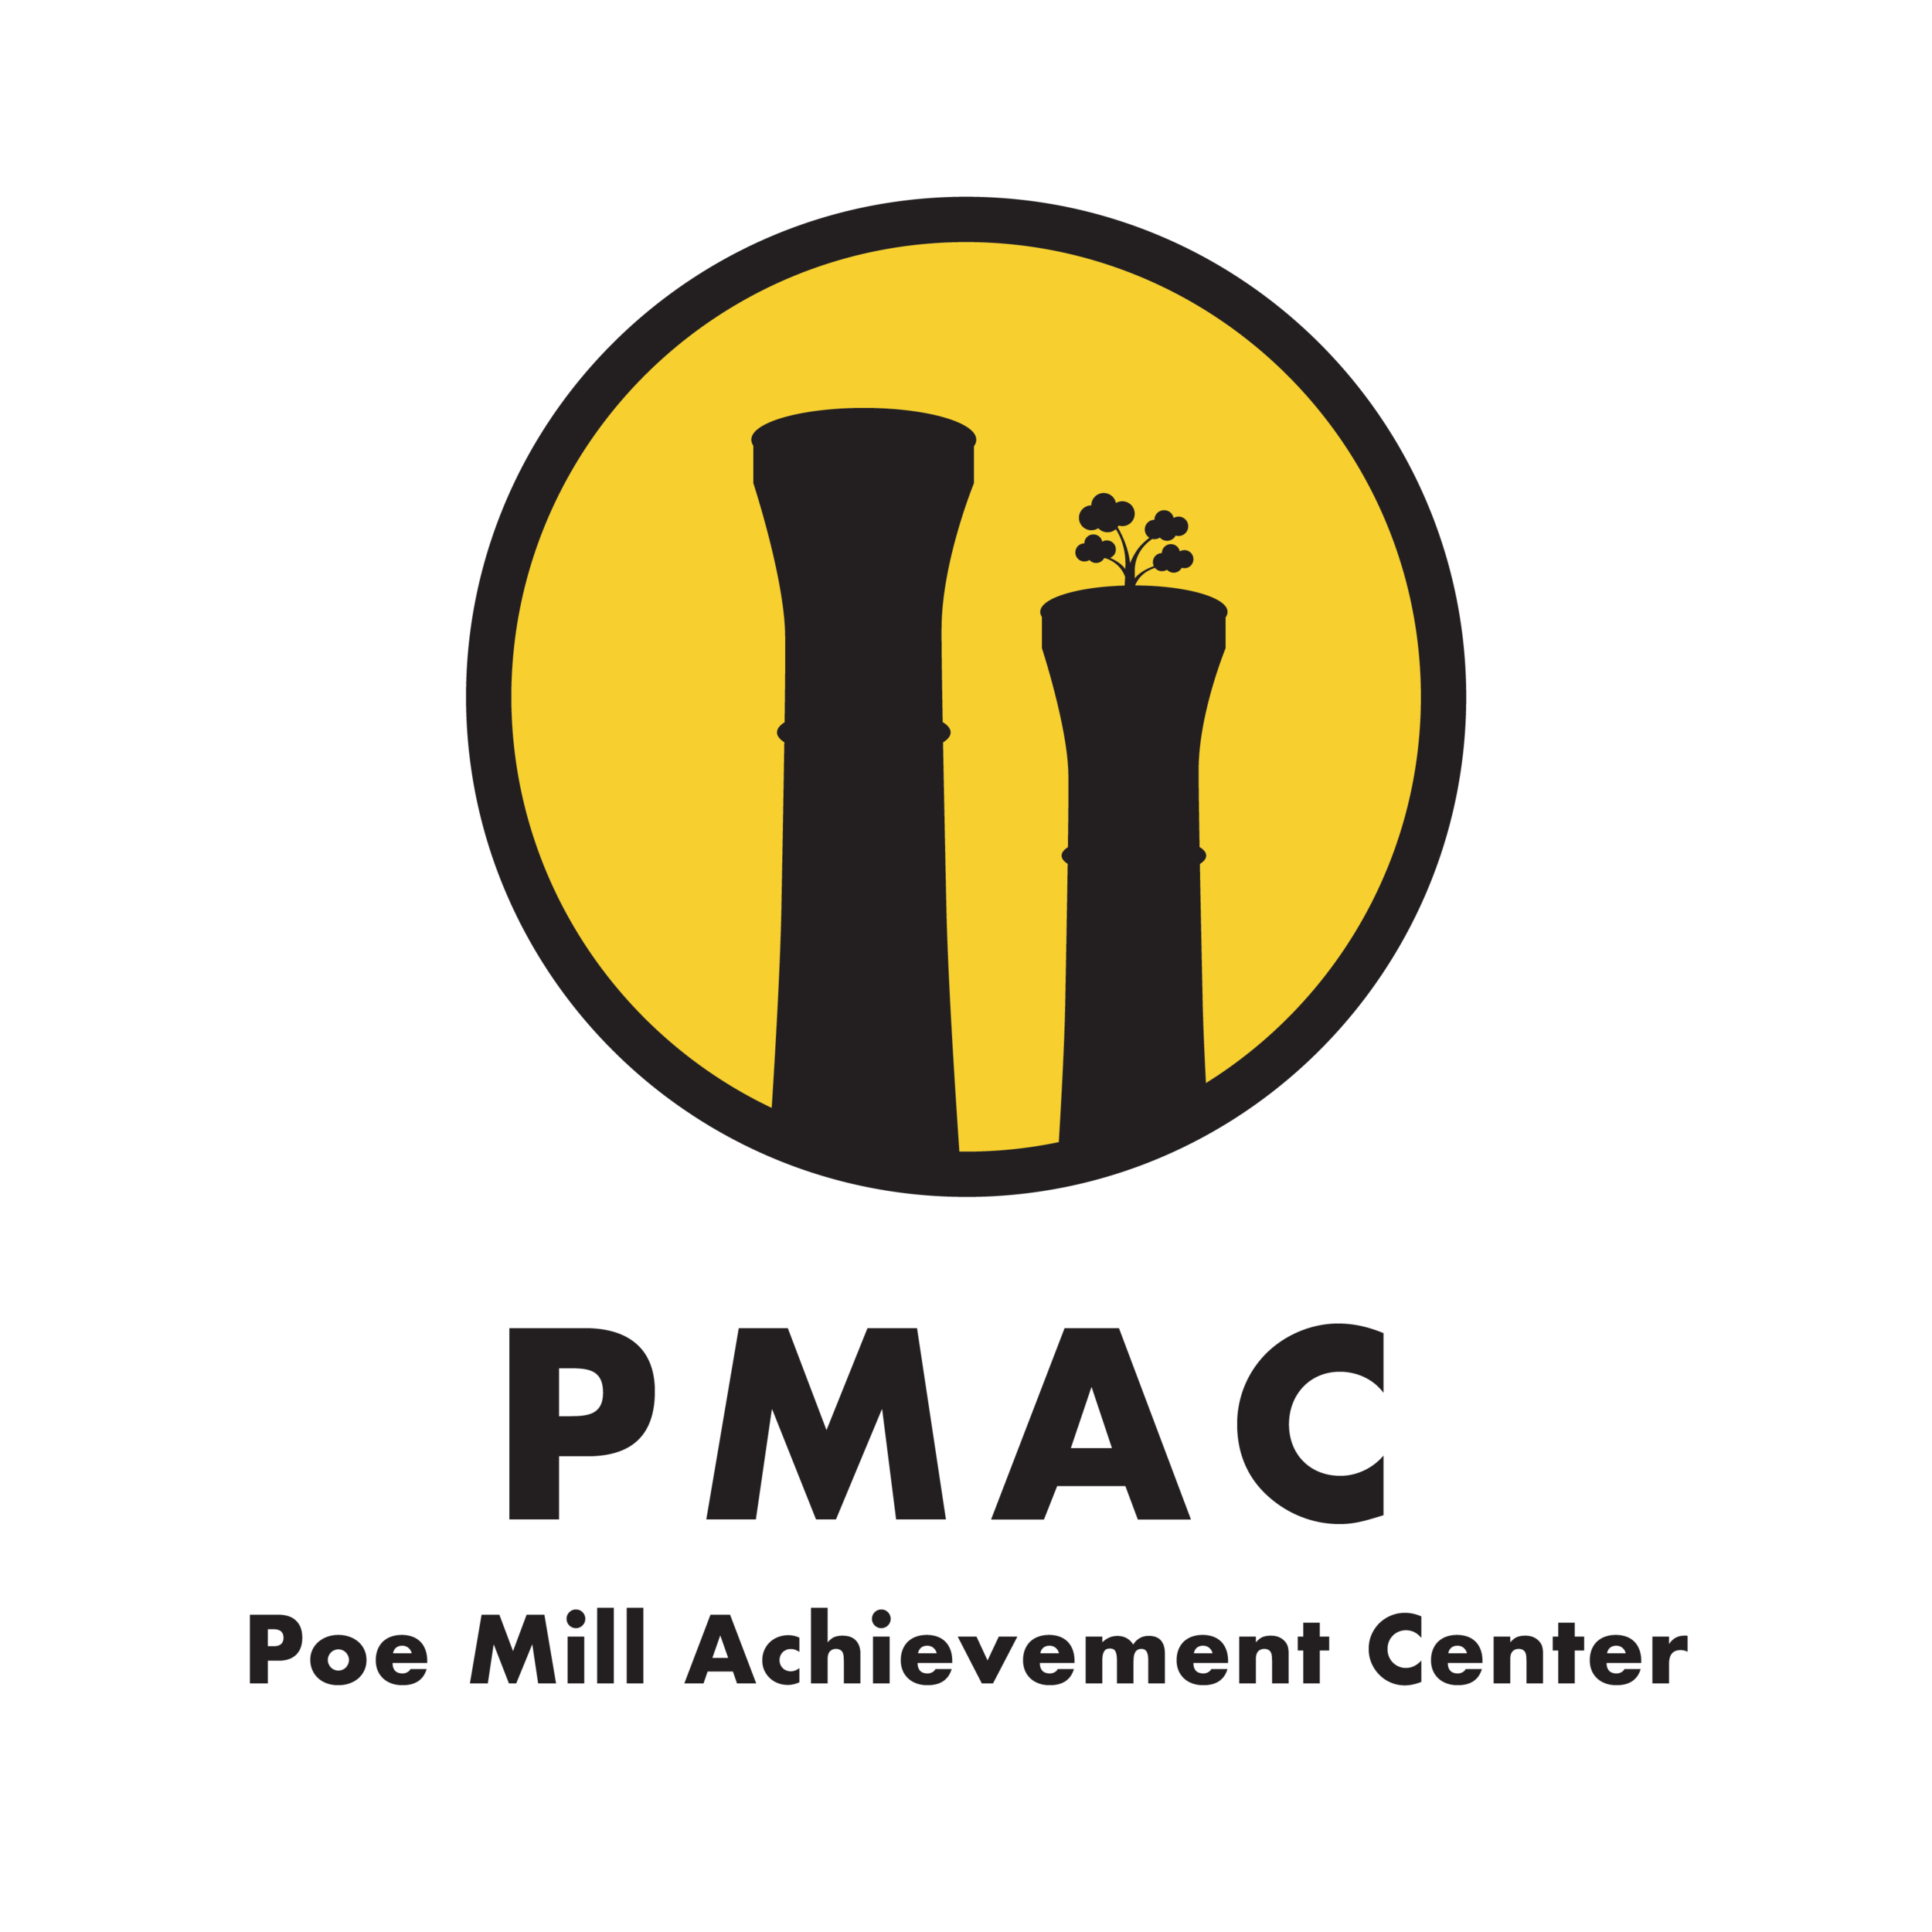 PMAC_Stacked-Acronym-Byline-Yellow-Logo.png